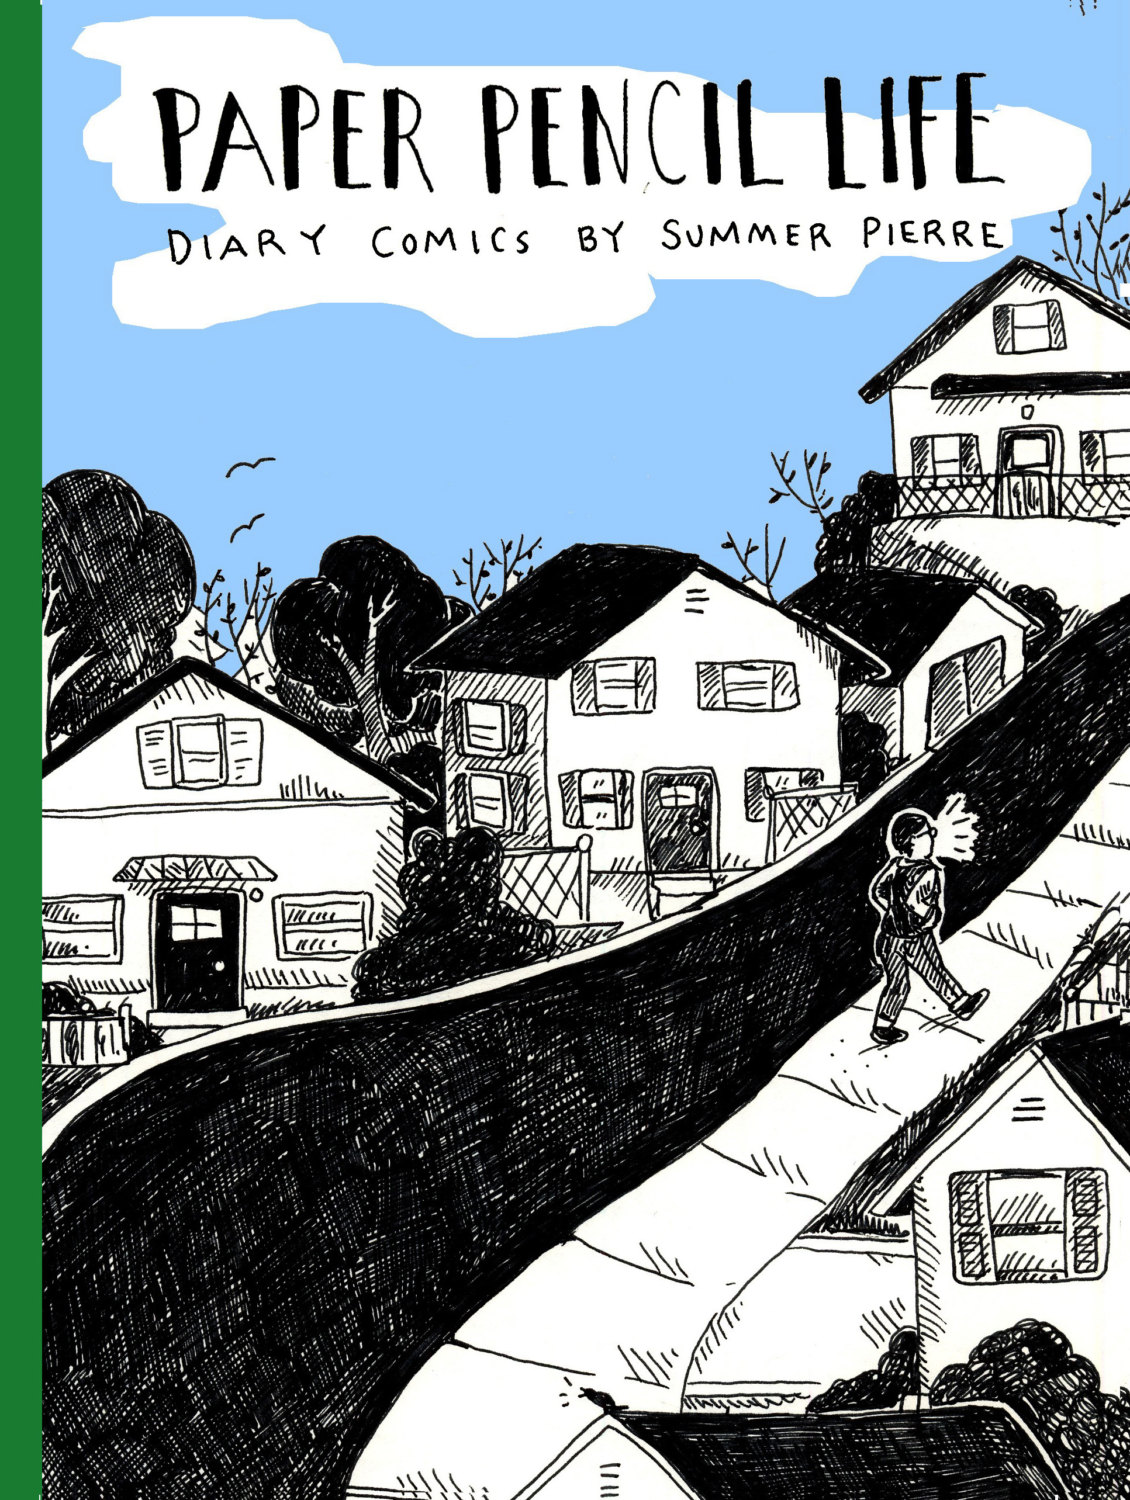 Paper Pencil Life: Diary Comics by Summer Pierre 1 by summerpierre.